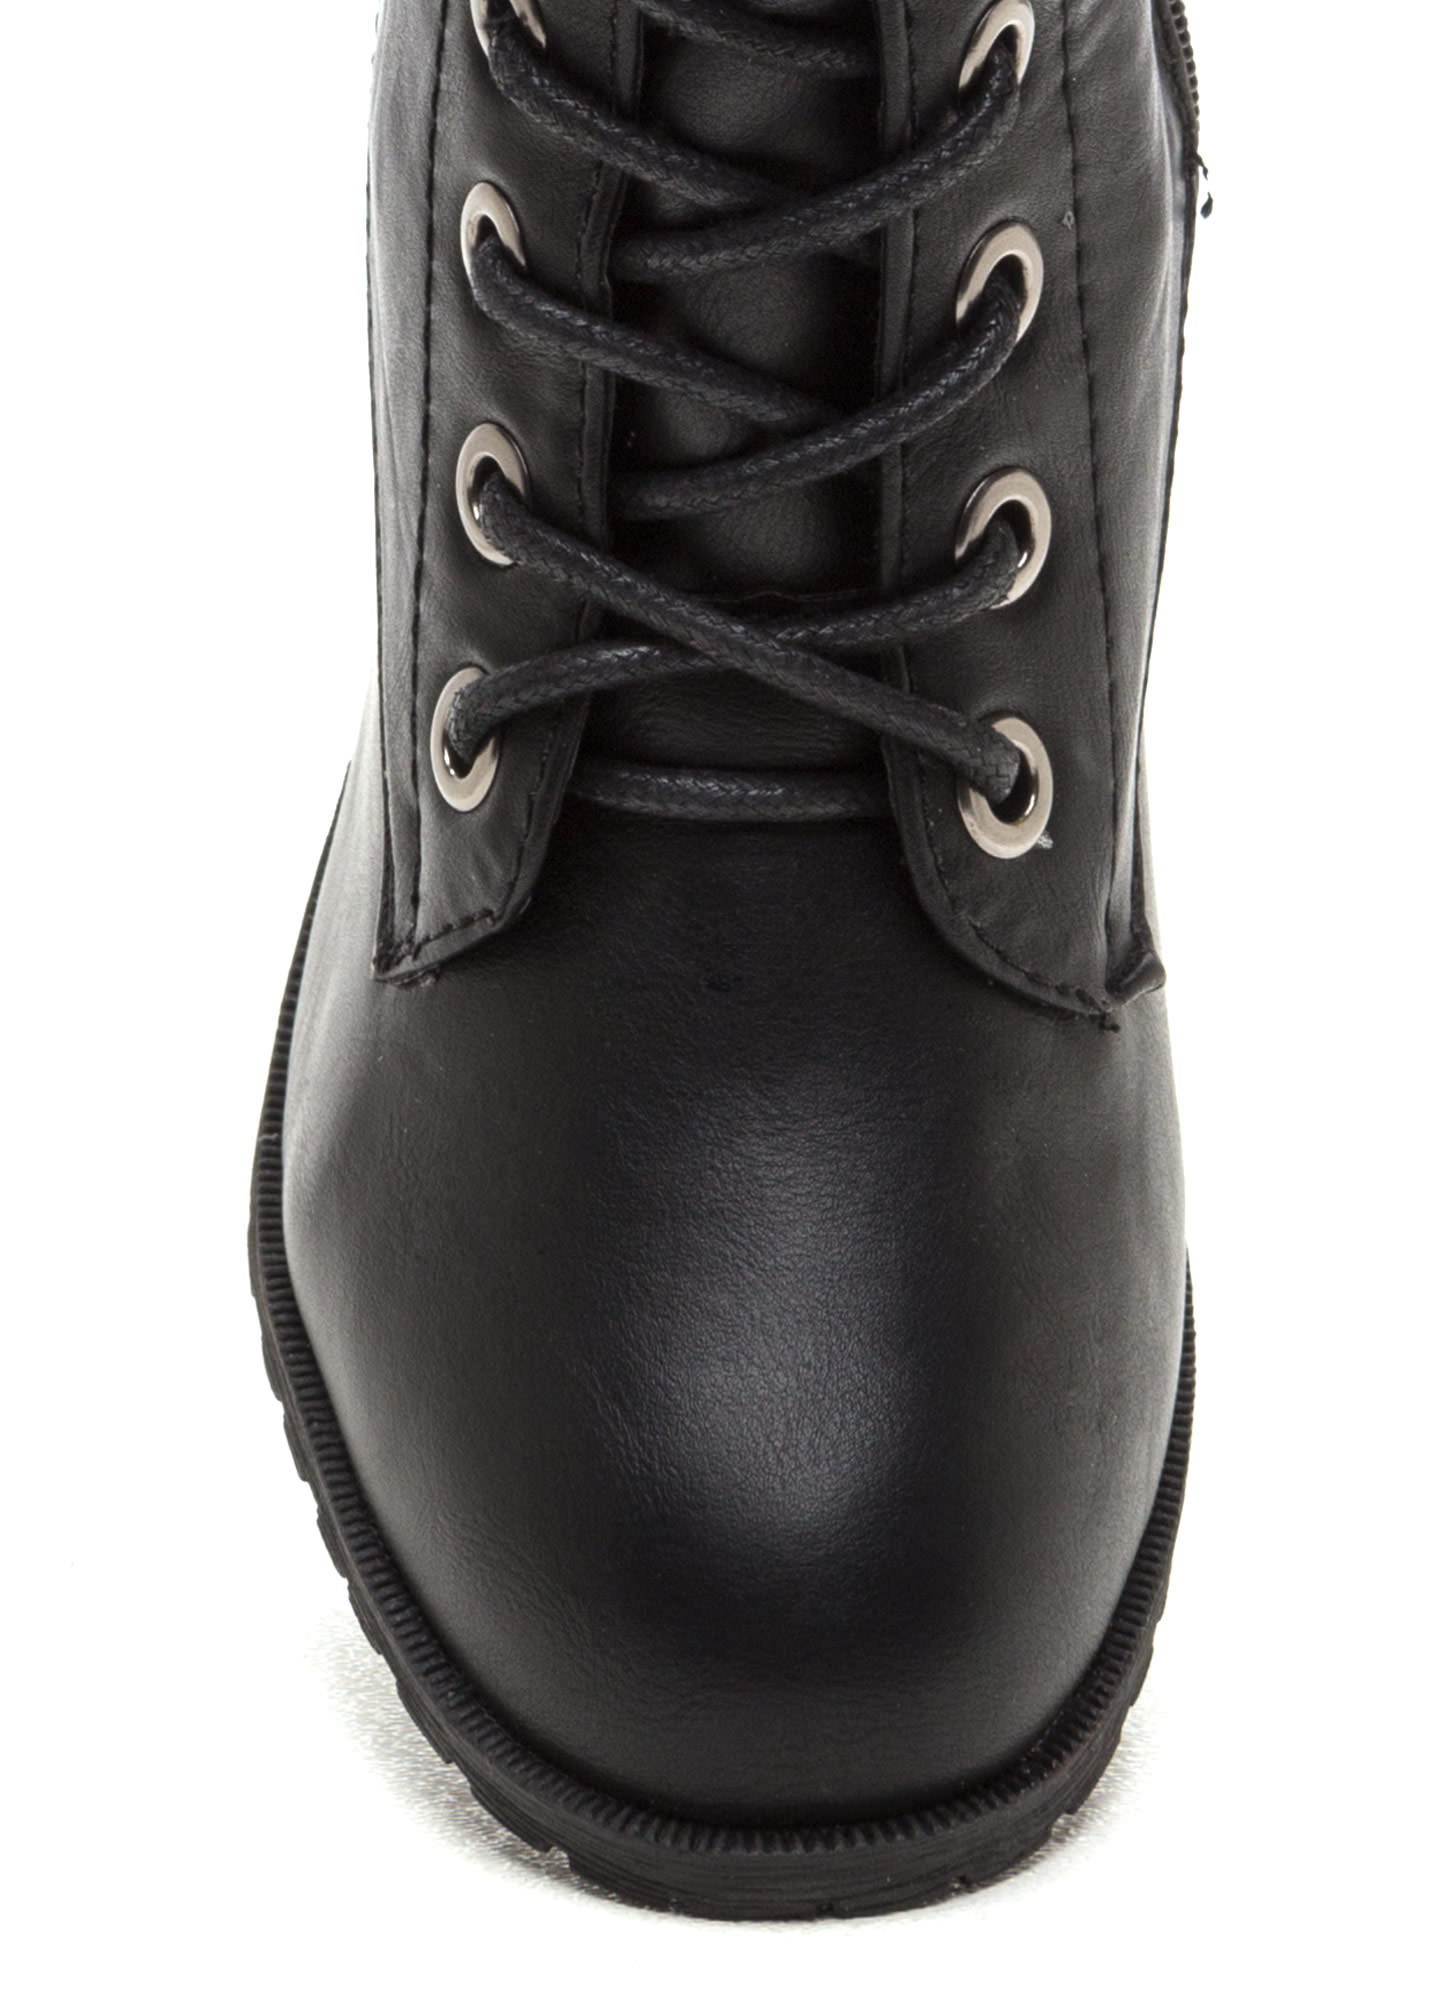 March On Faux Leather Boots BLACK